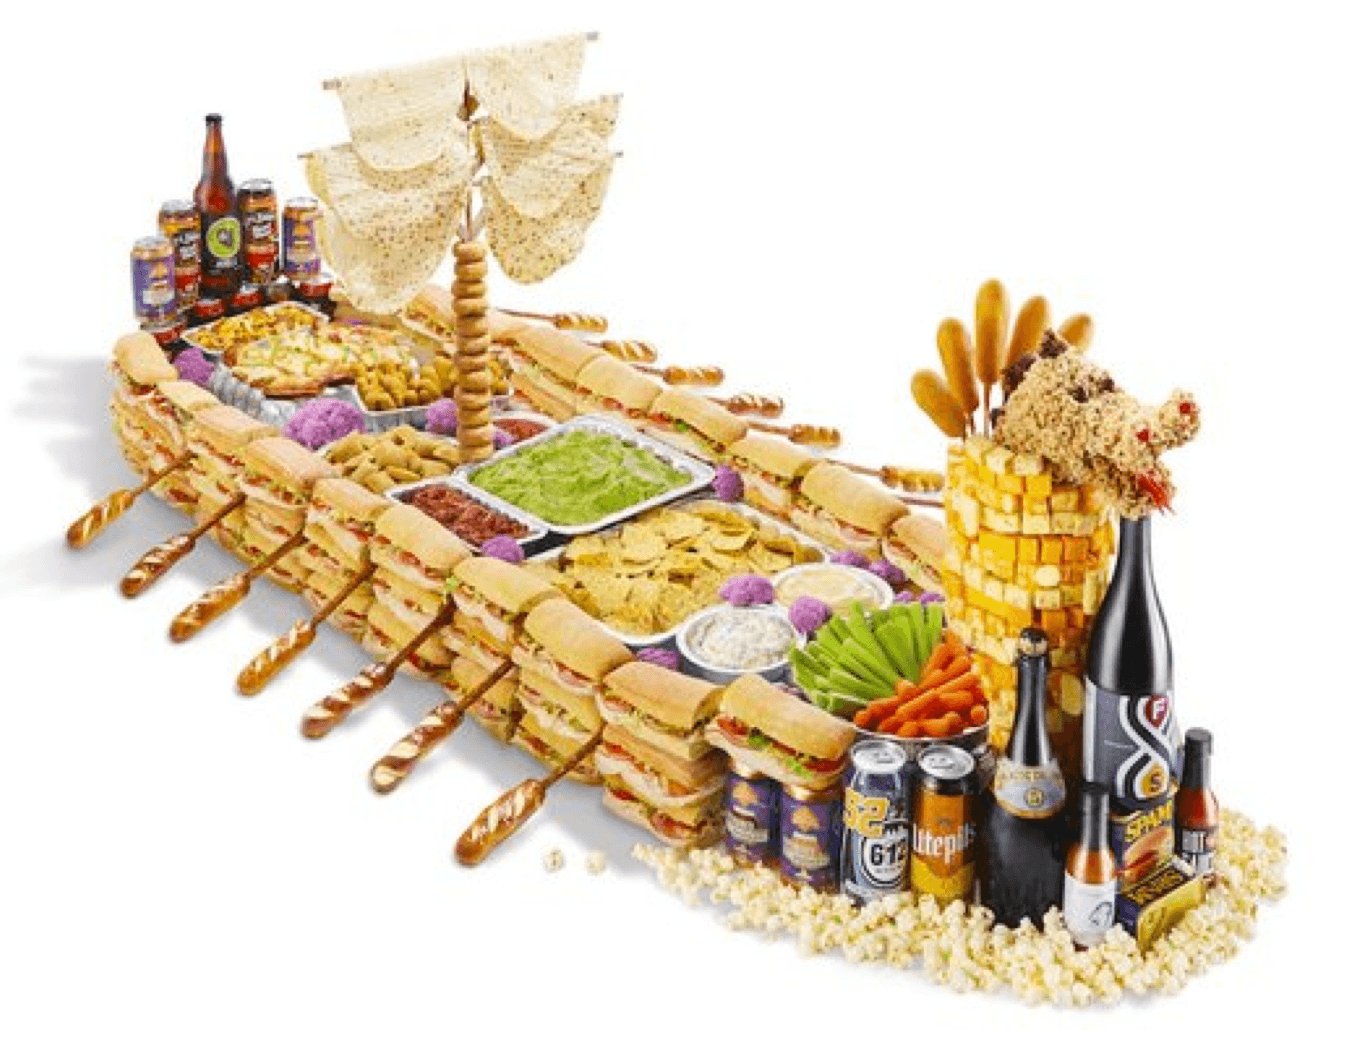 Why settle for a snack stadium when you can build your own Viking-inspired snack ship?